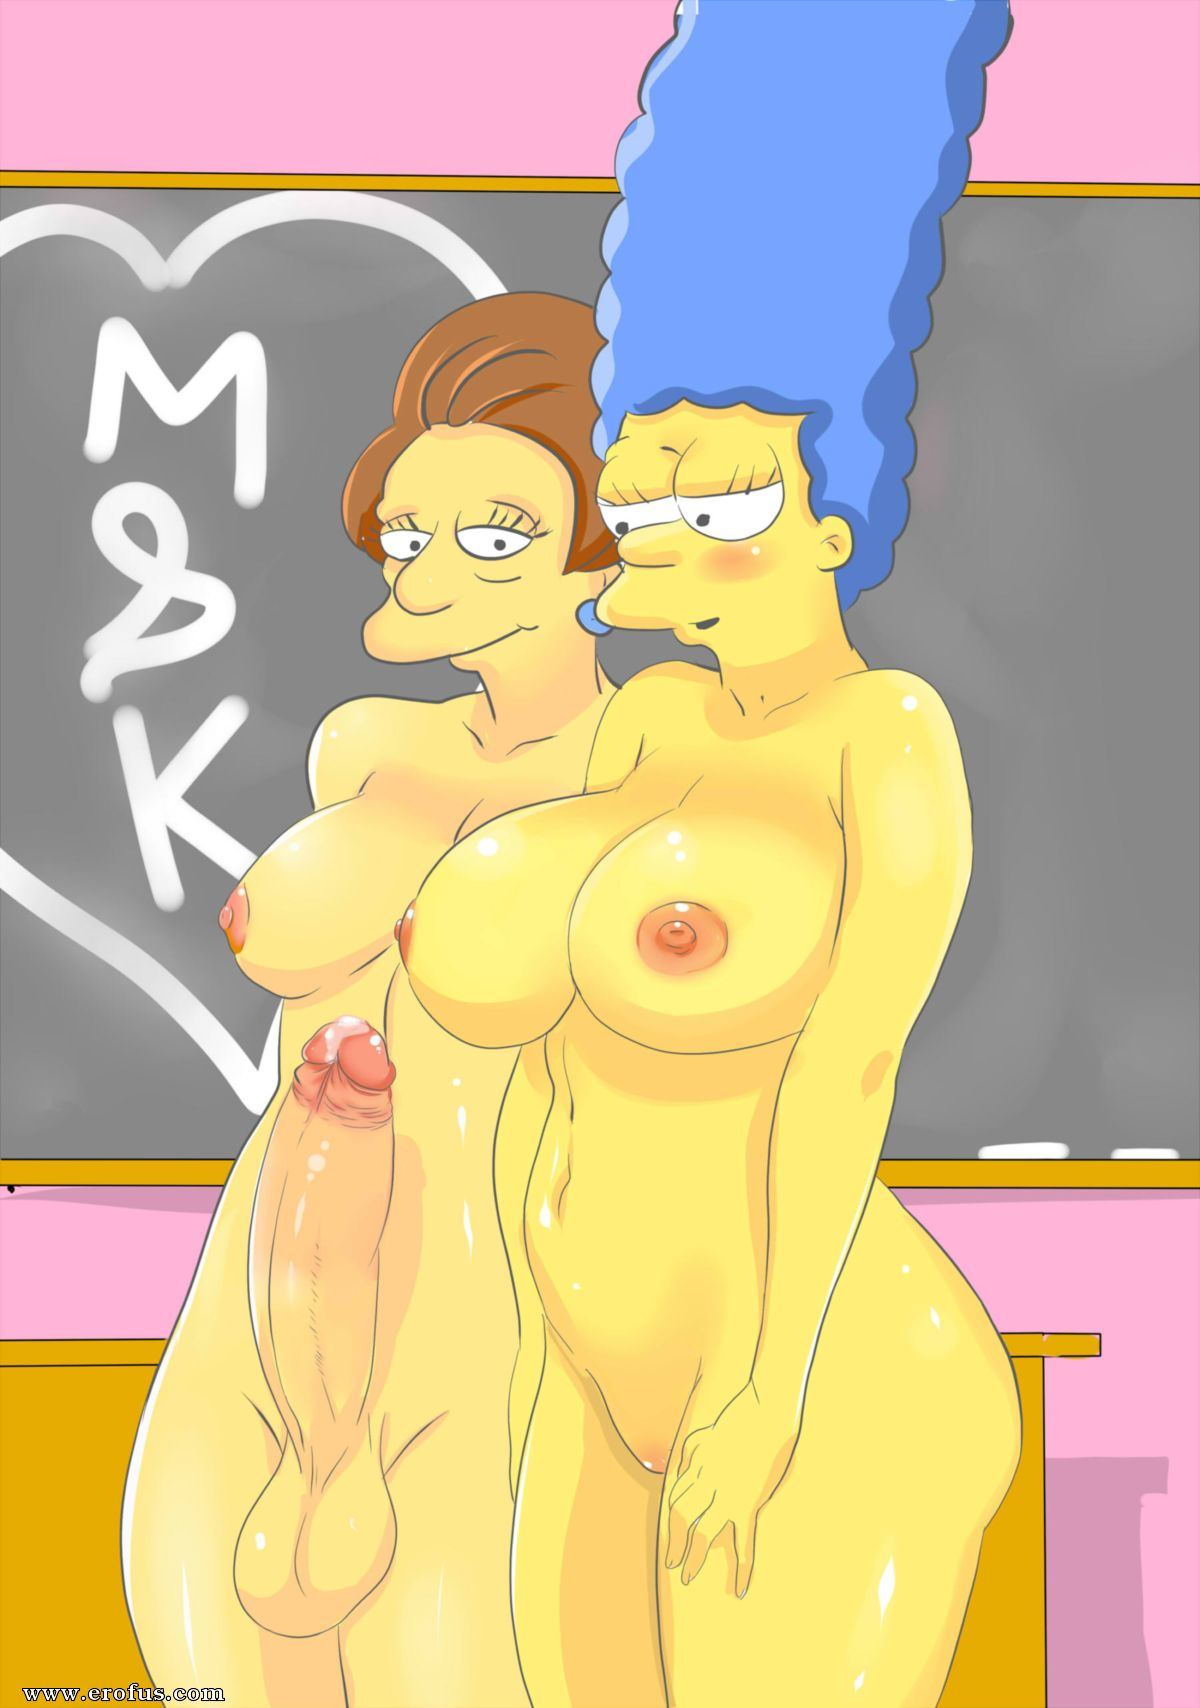 Cartoon Milf Porn Pics page 7 | various-authors/delta26/artwork-featuring-hot-busty